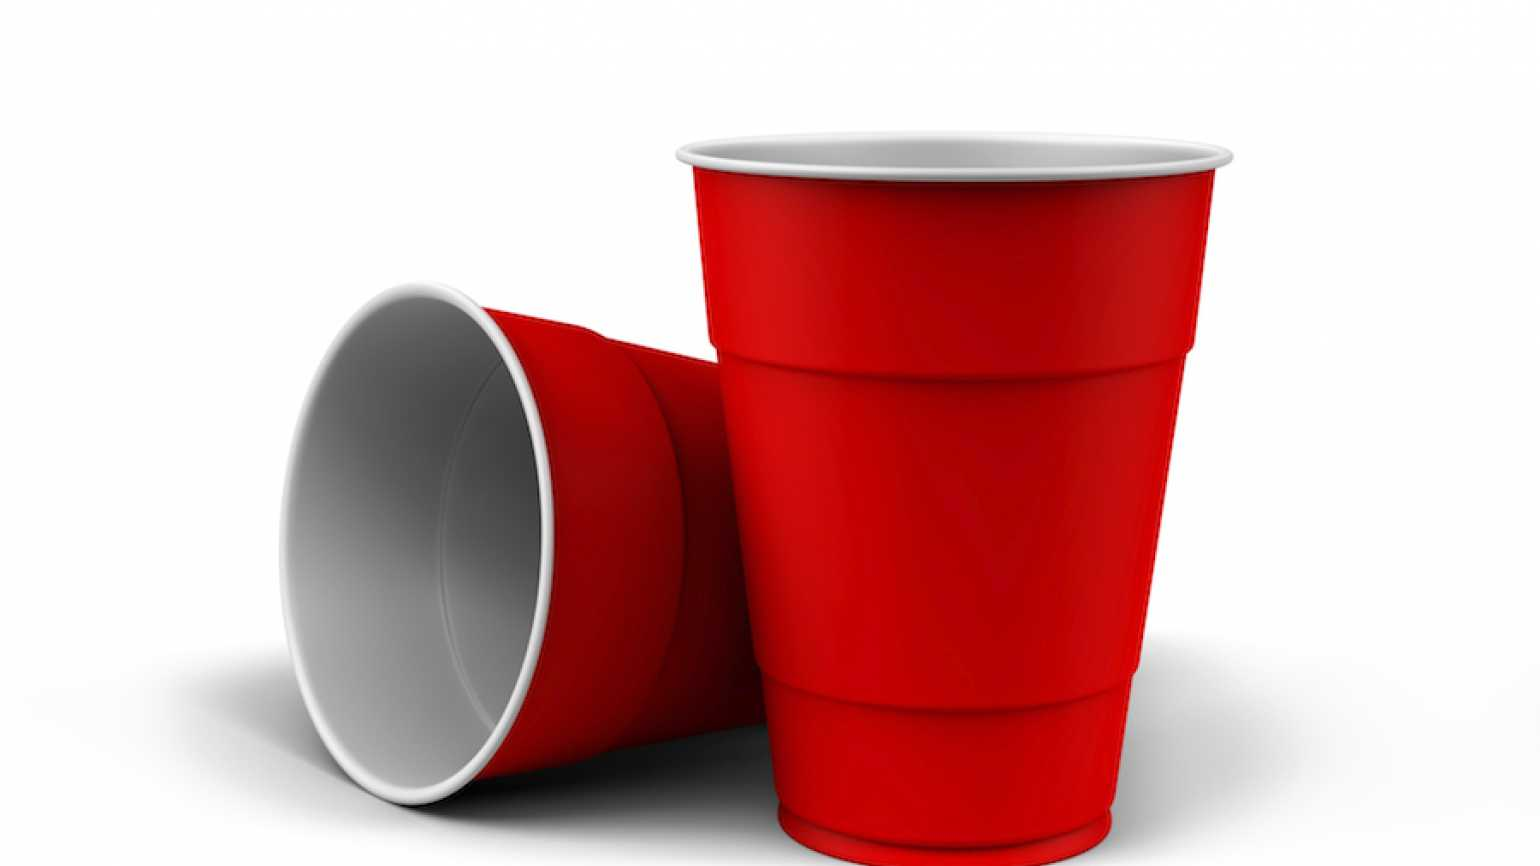 Red Dixie cups. Thinkstock.